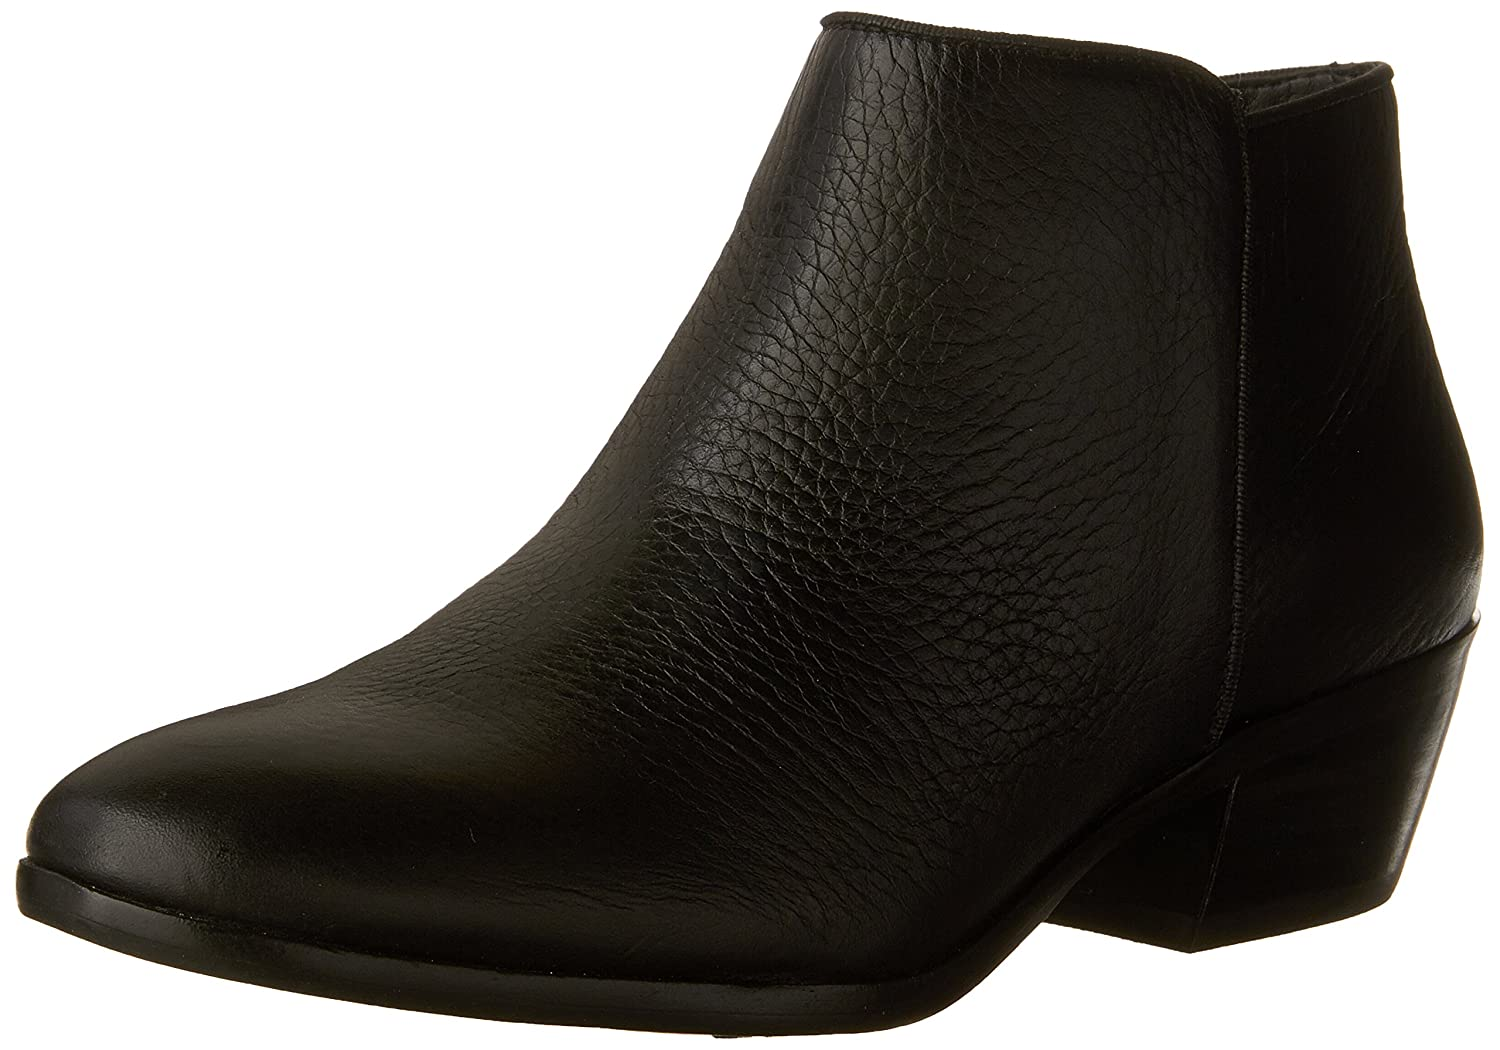 Amazon Best Sellers: Best Women's Ankle Boots & Booties